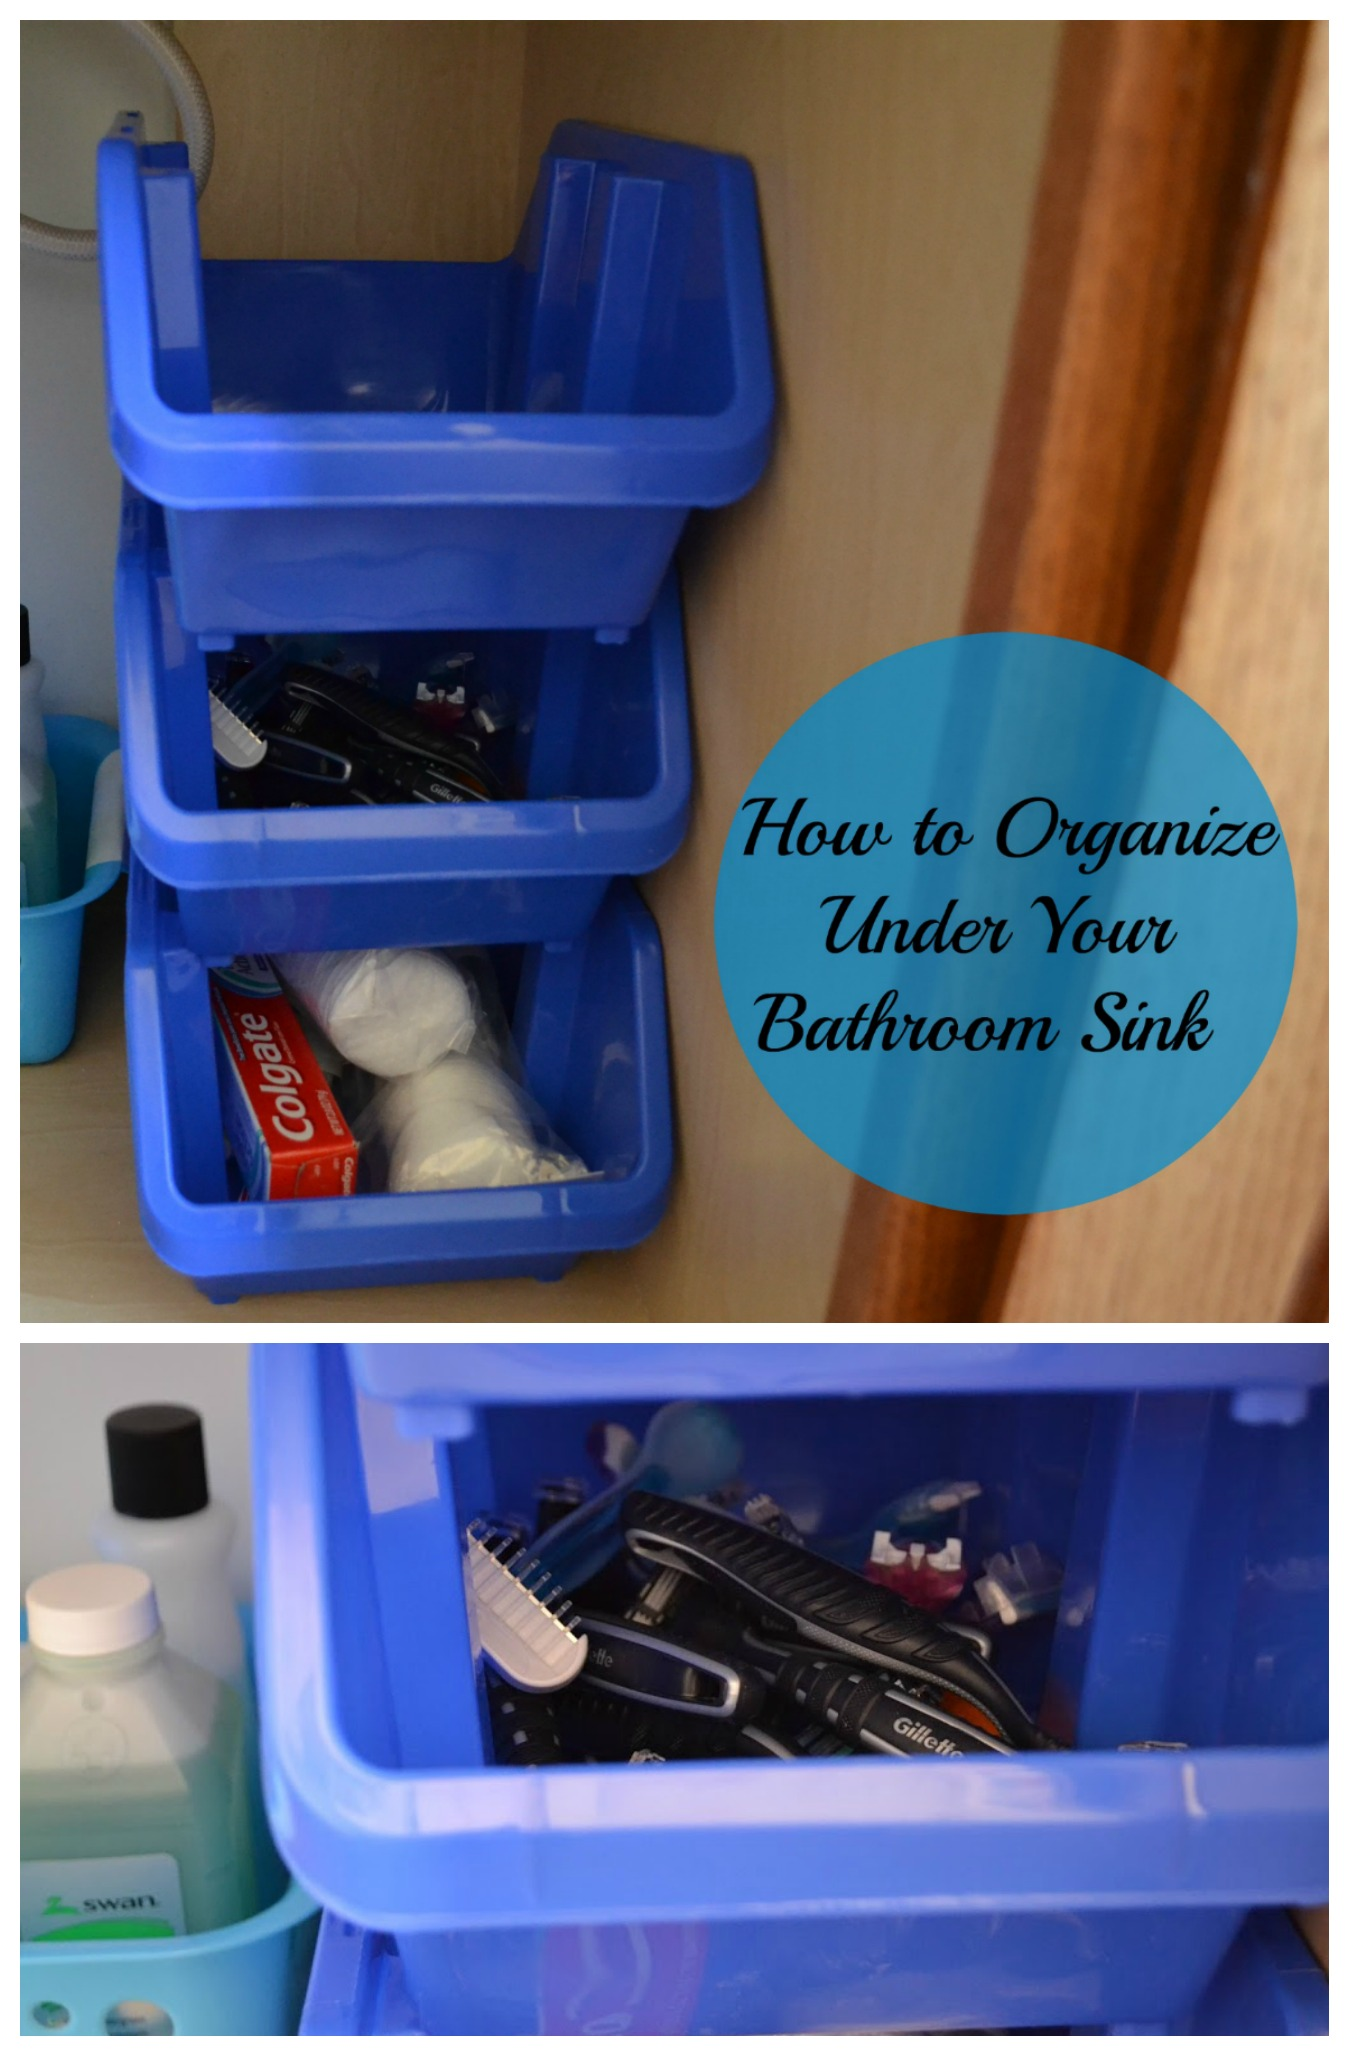 how to organize under the bathroom sink how to organize bathroom sink my fruitful home 26160